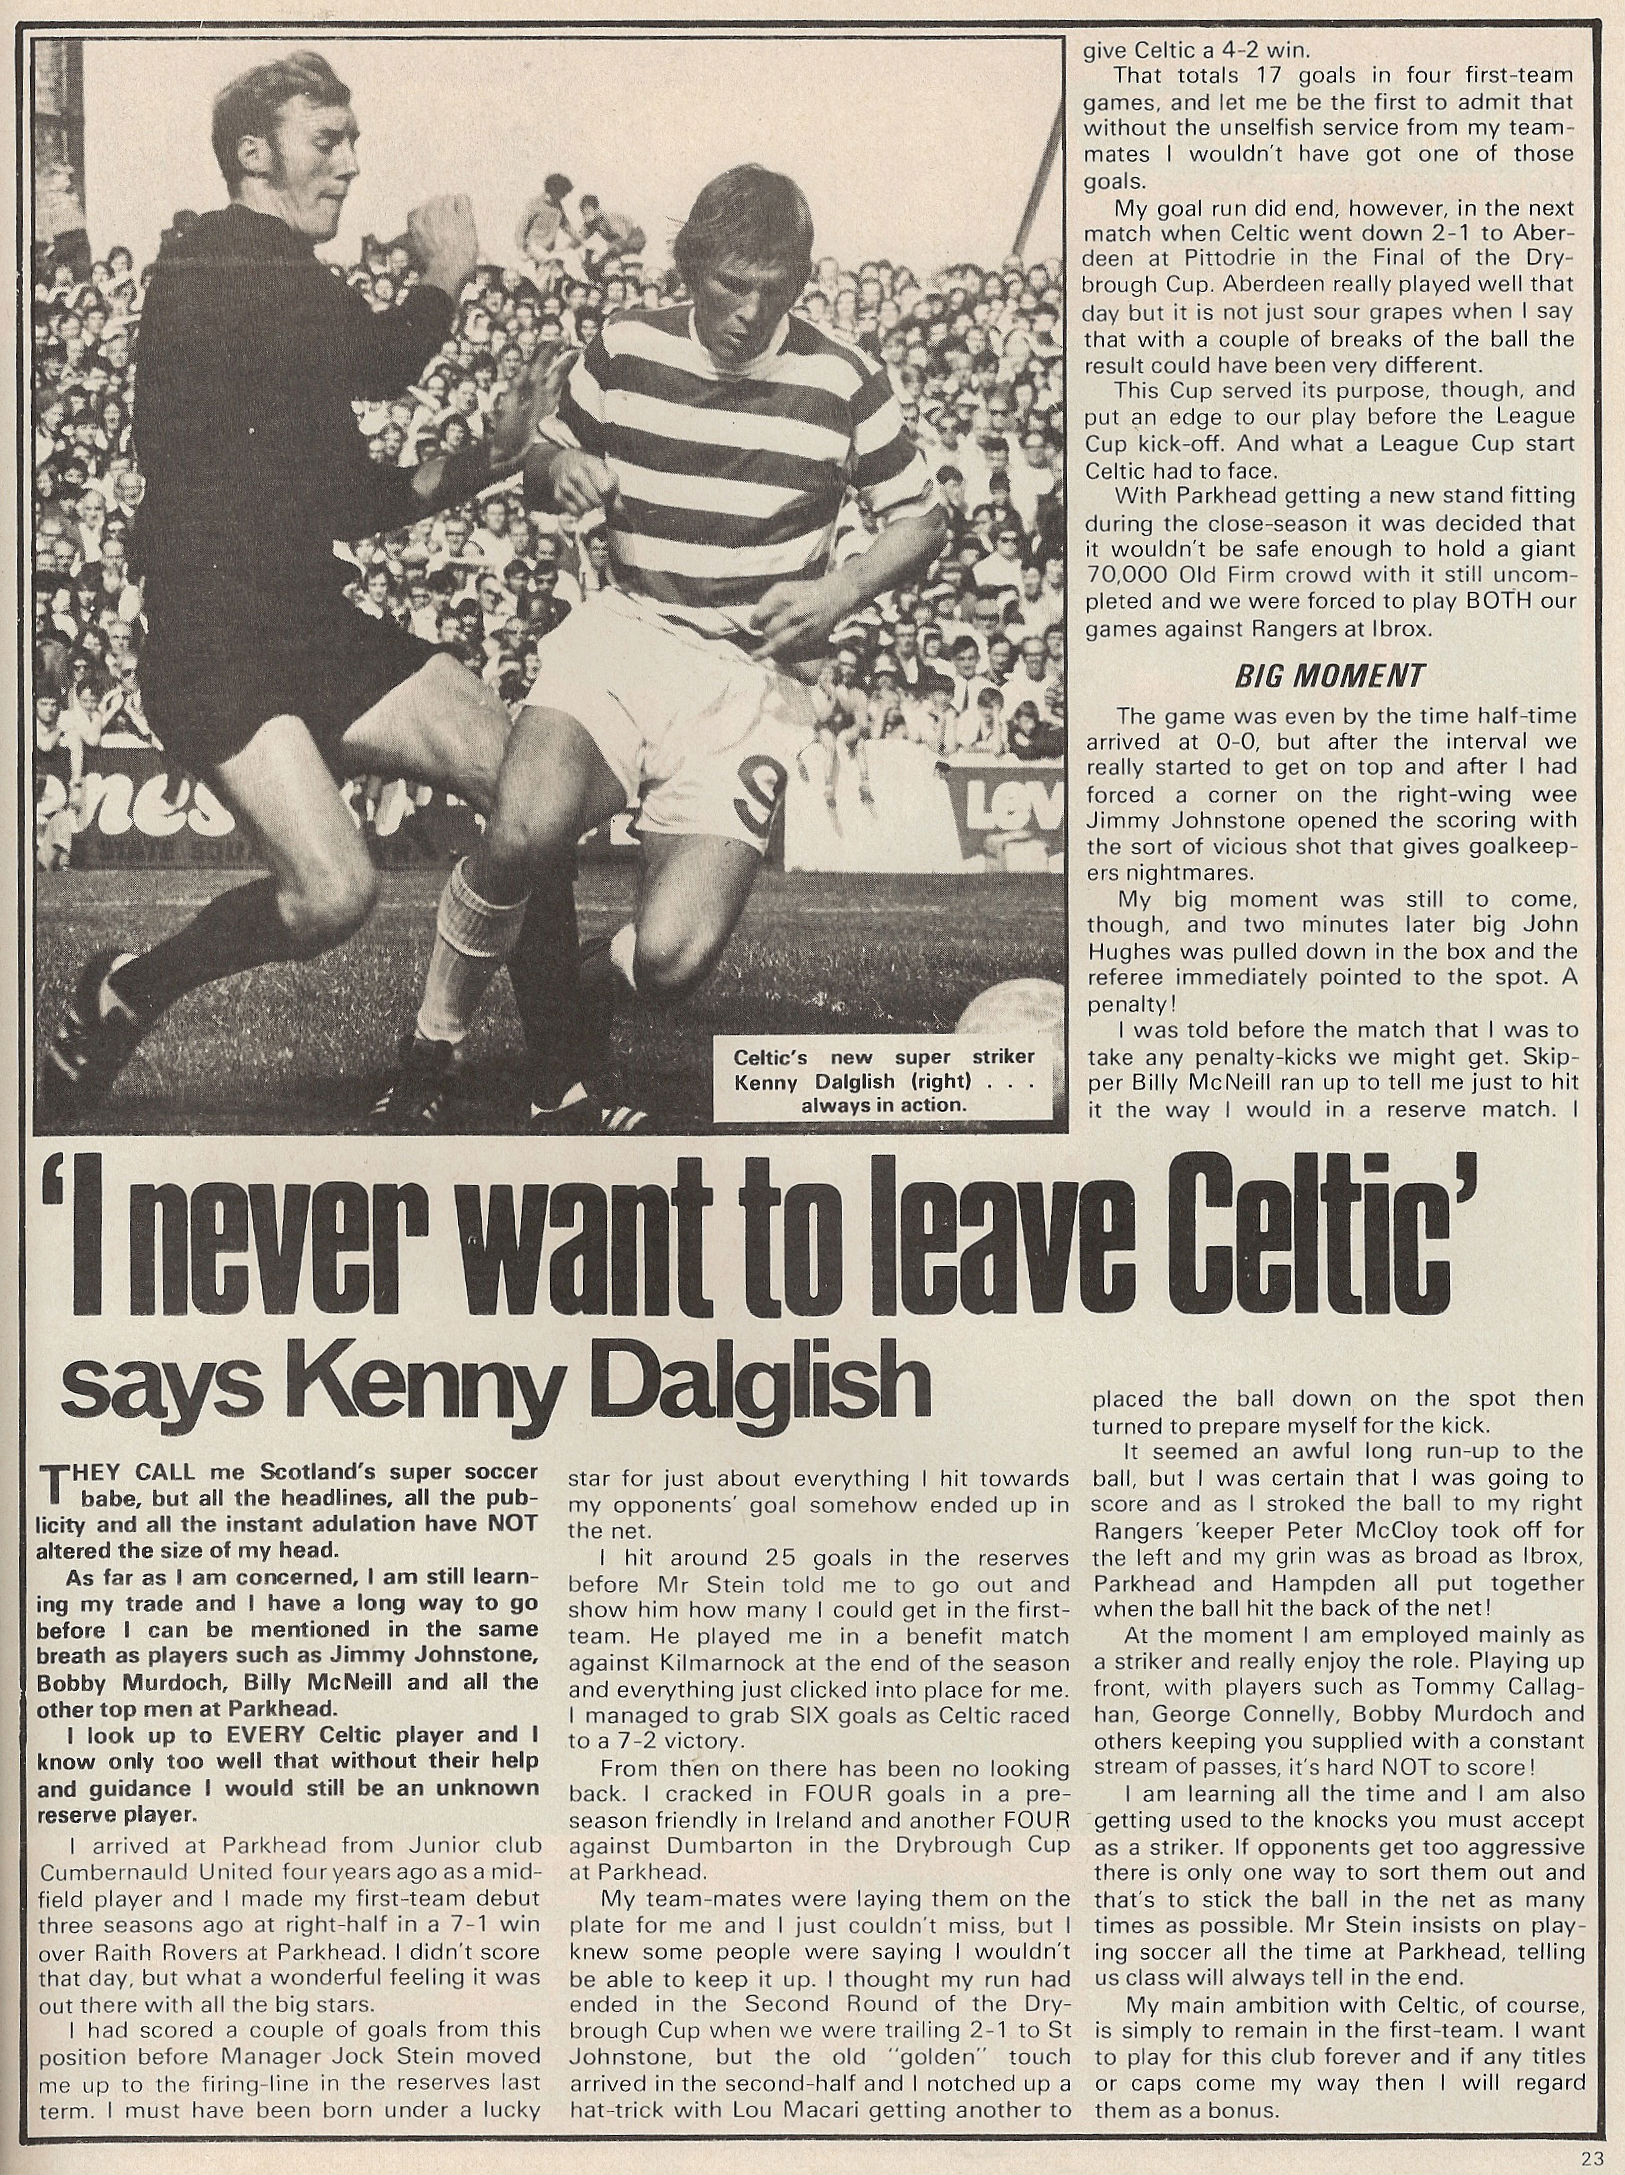 I never want to leave Celtic - 16 October 1971